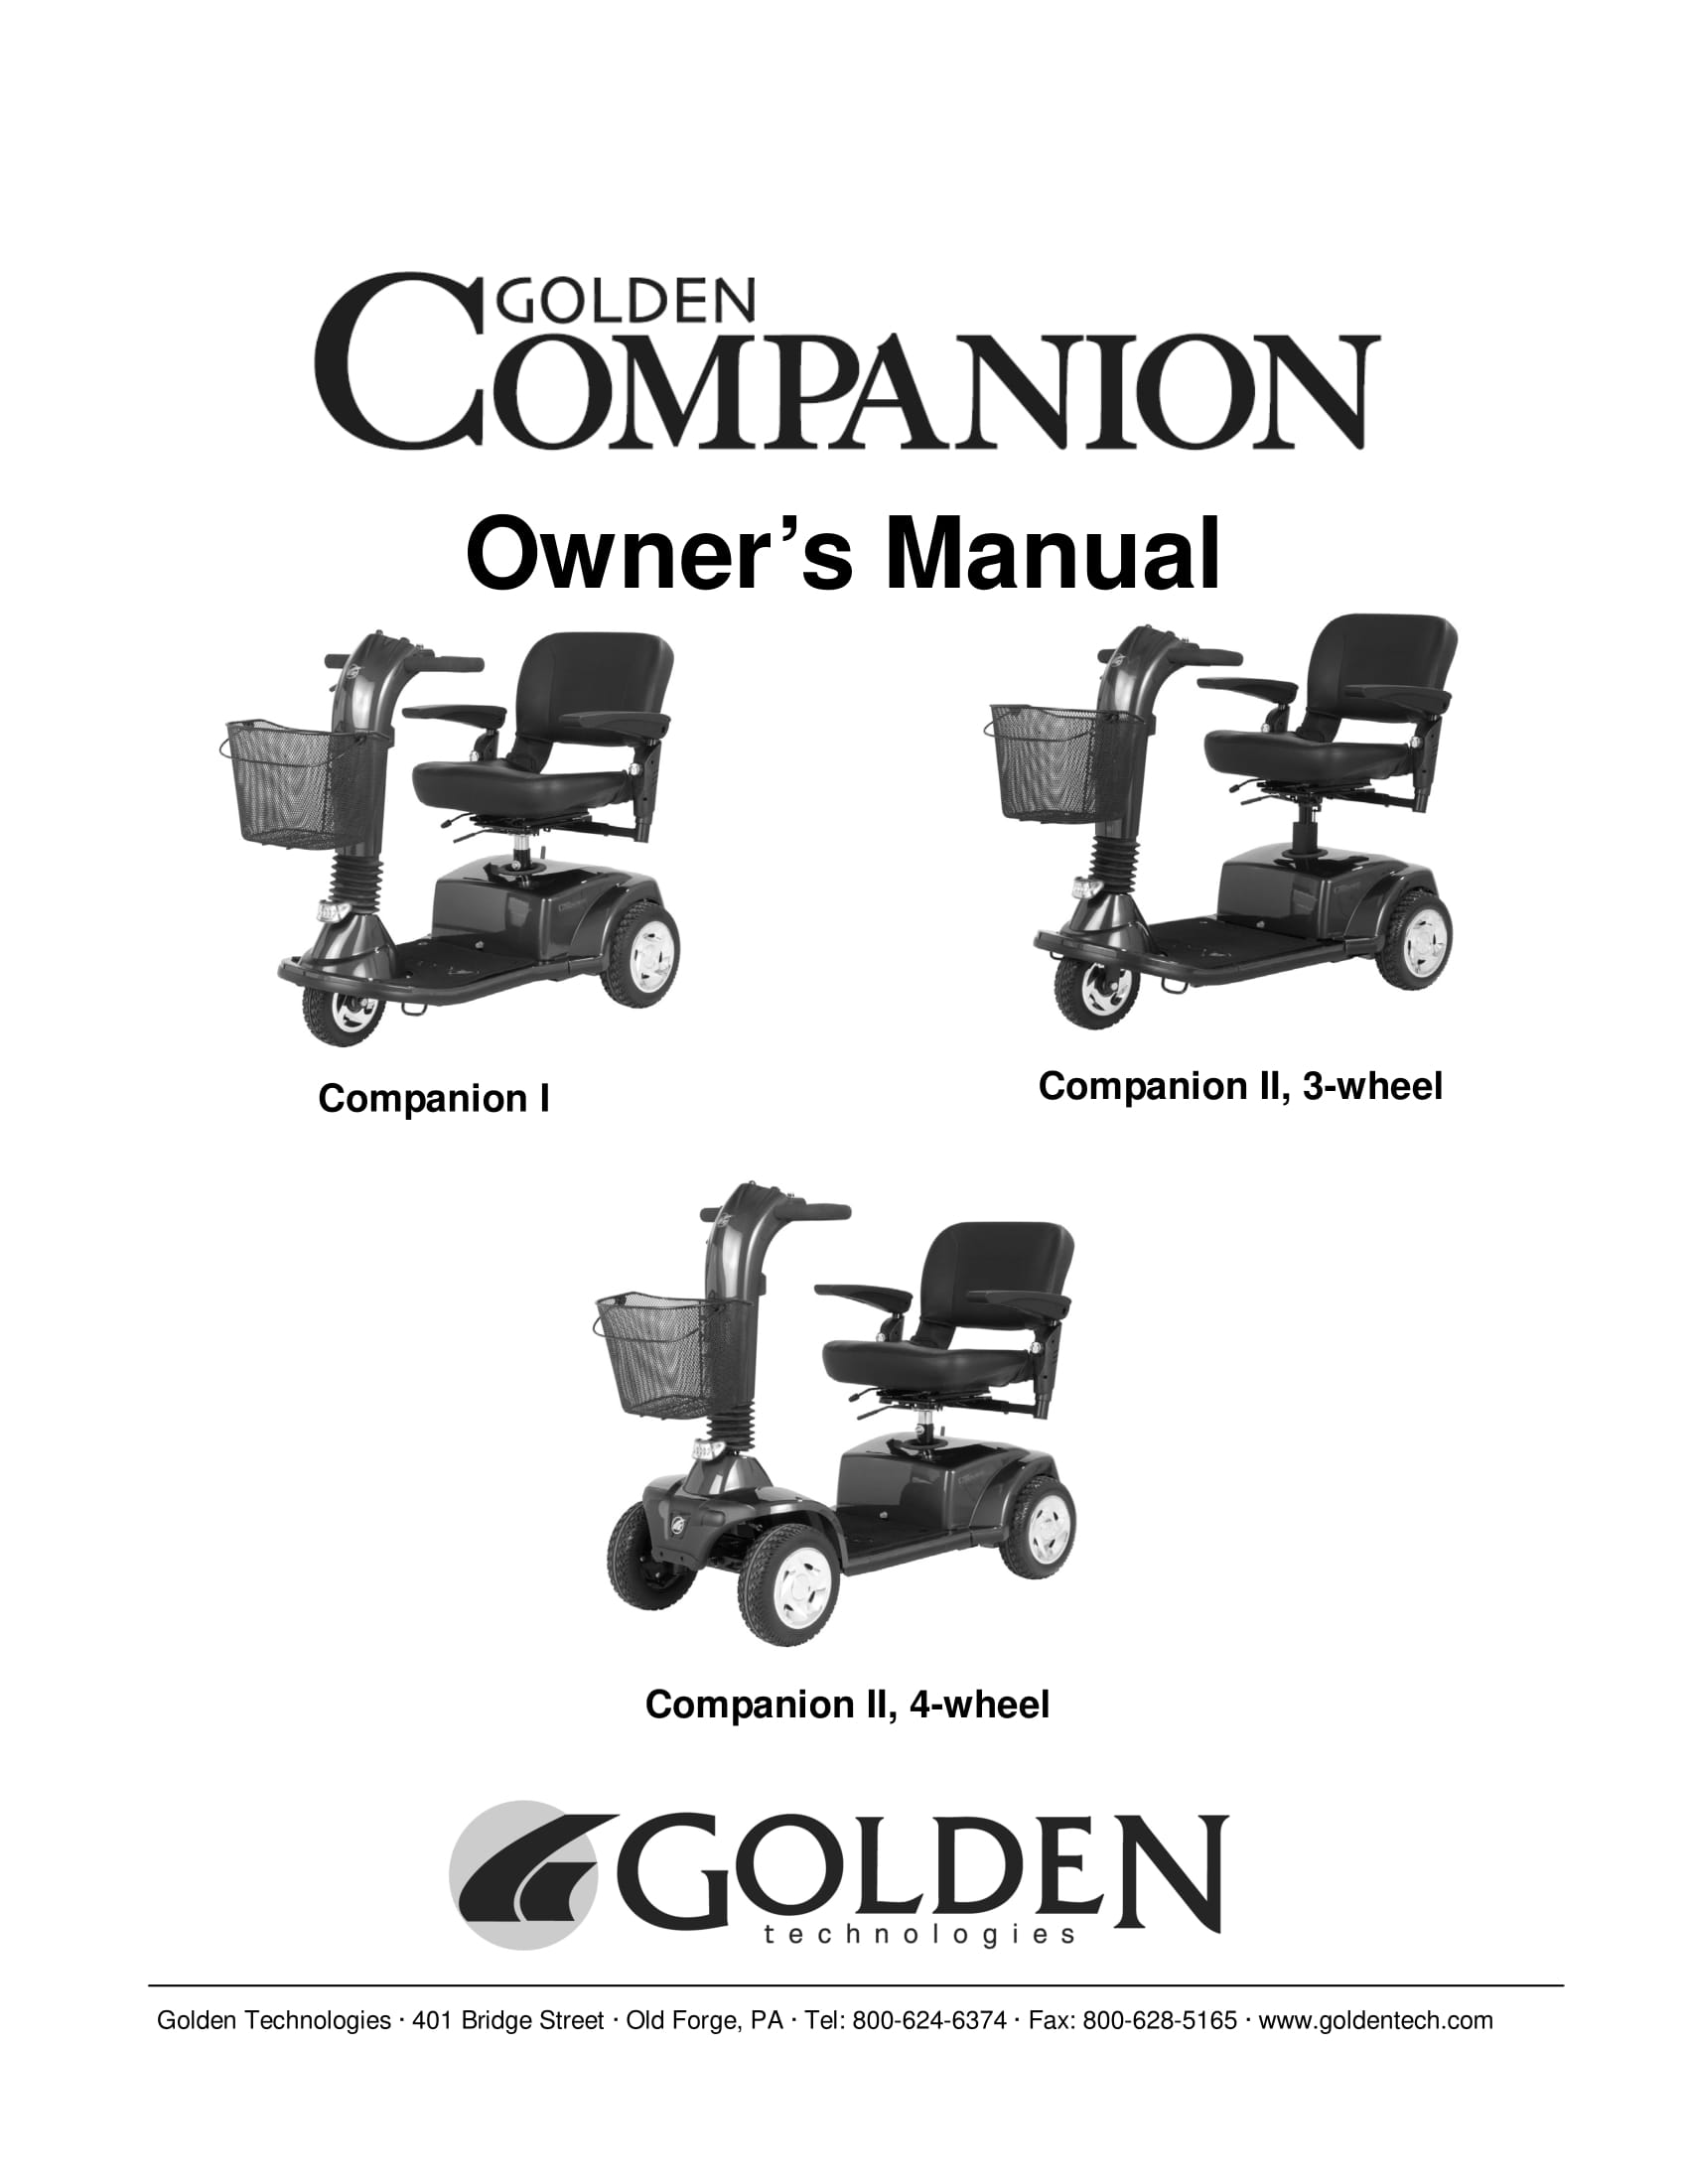 Golden: Companion II 3-Wheel Scooter